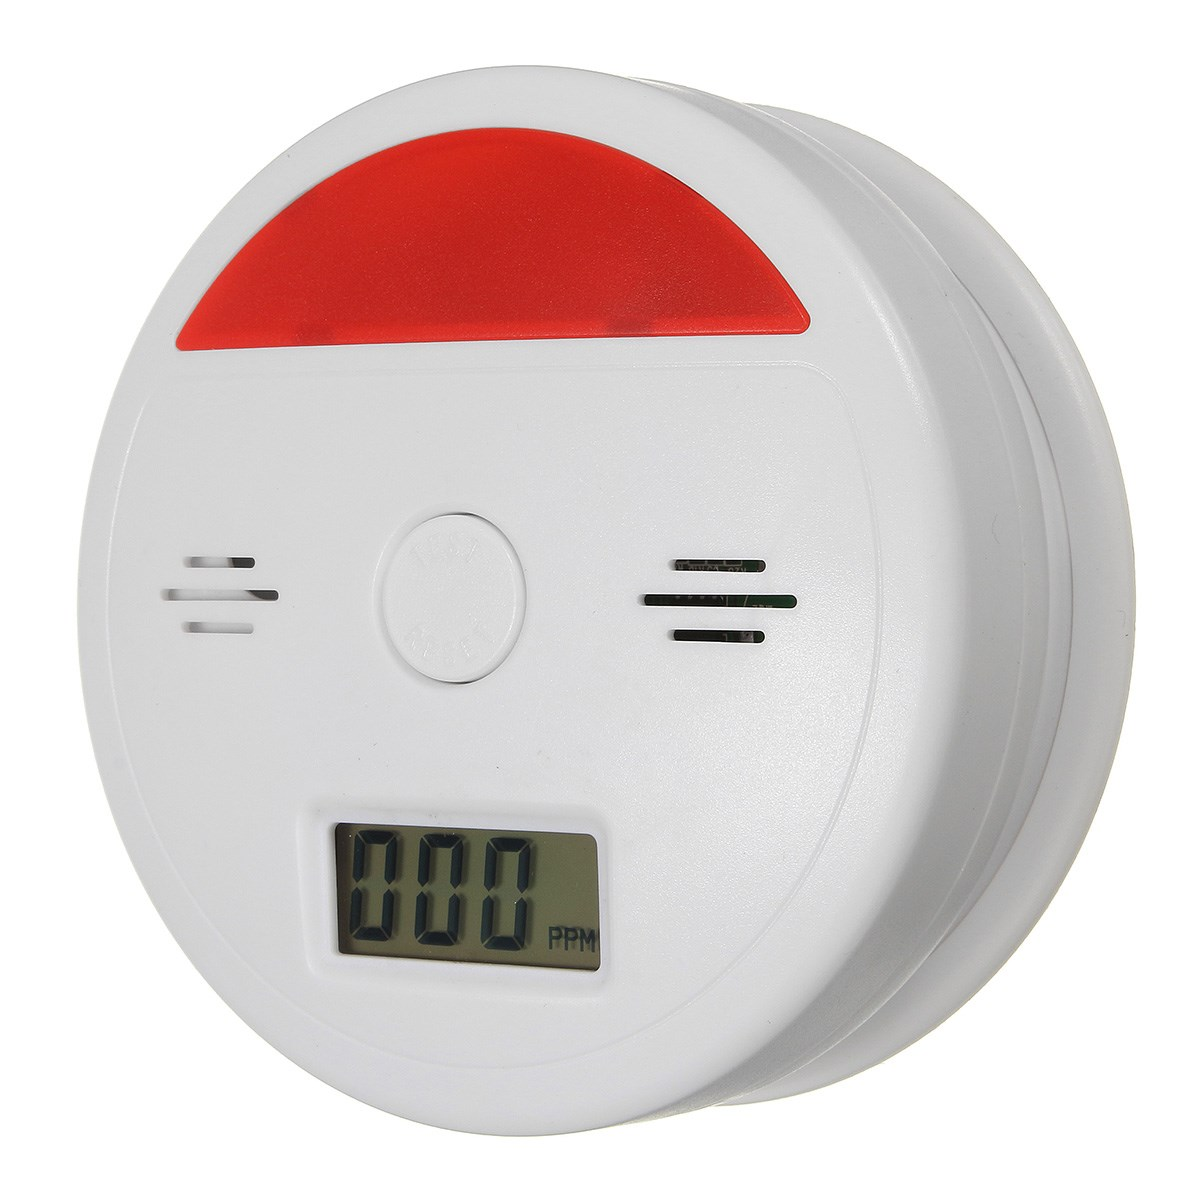 1PC Home Safety High Sensitive LCD CO Carbon Monoxide Poisoning Sensor Alarm Warning Detector Tester new 1pc home safety high sensitive lcd co carbon monoxide poisoning sensor alarm warning detector tester